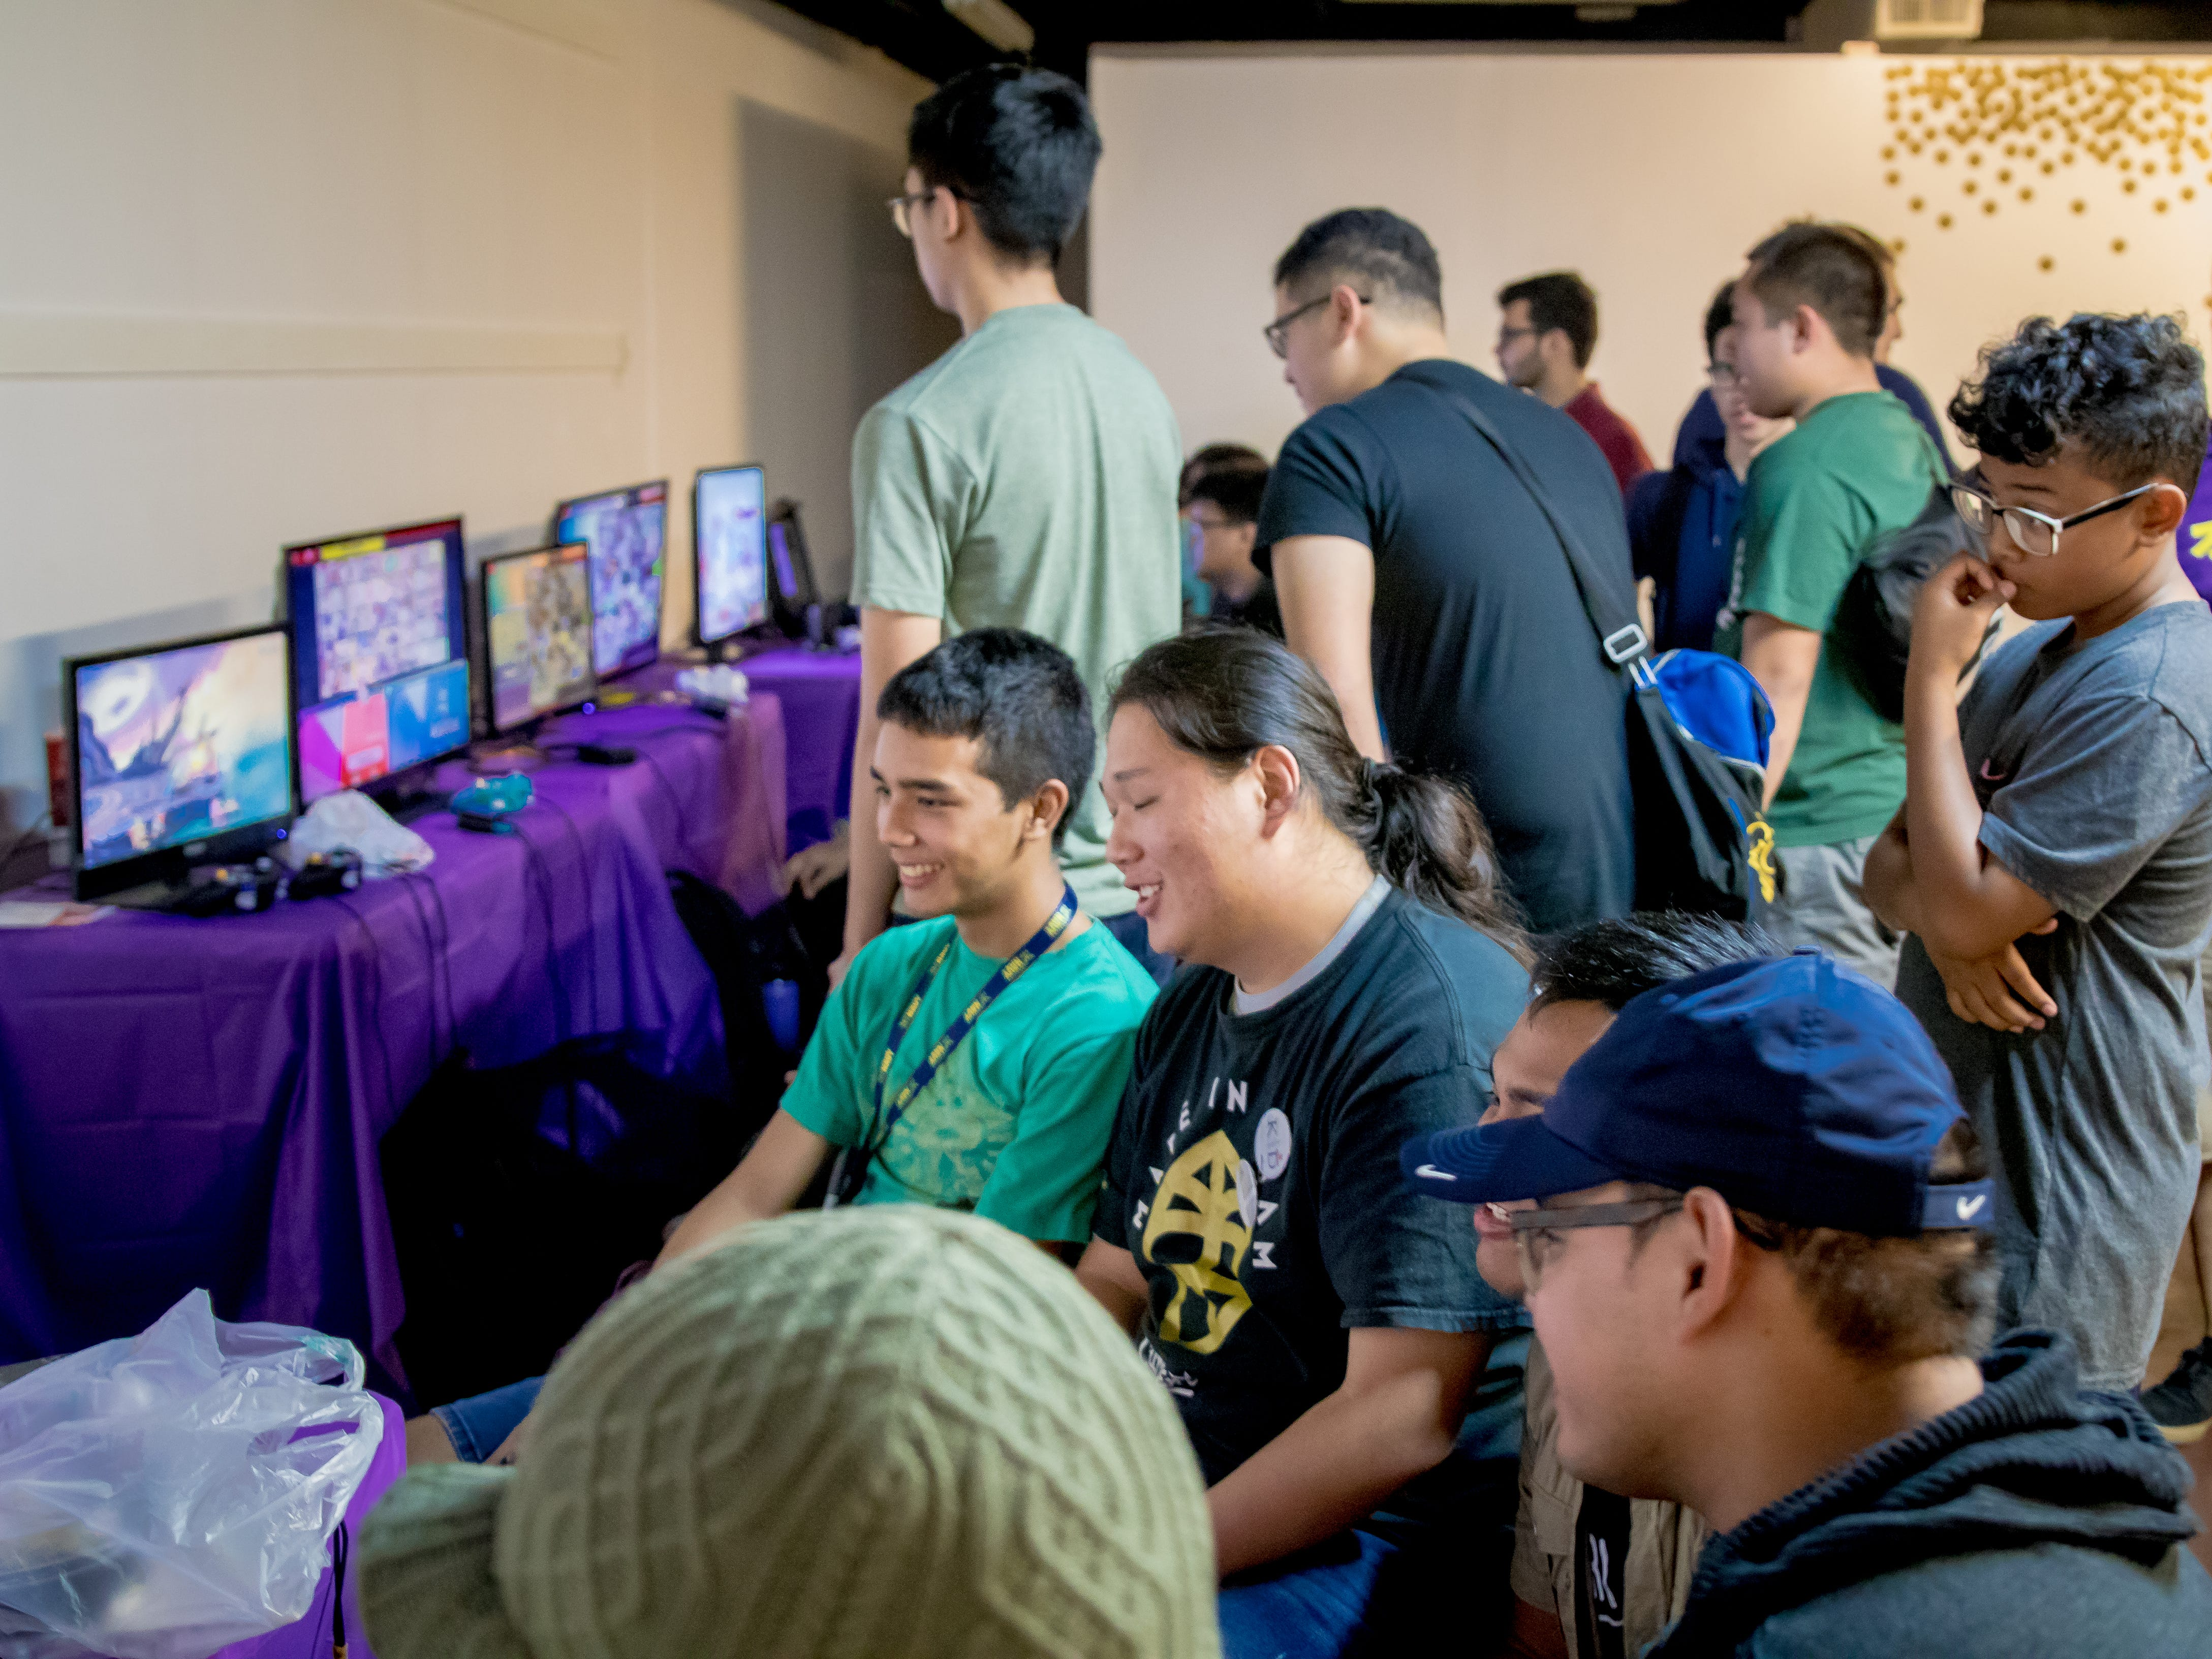 Gamers battle each other during the Herocon event held at Agana Shopping Center on Dec. 9.